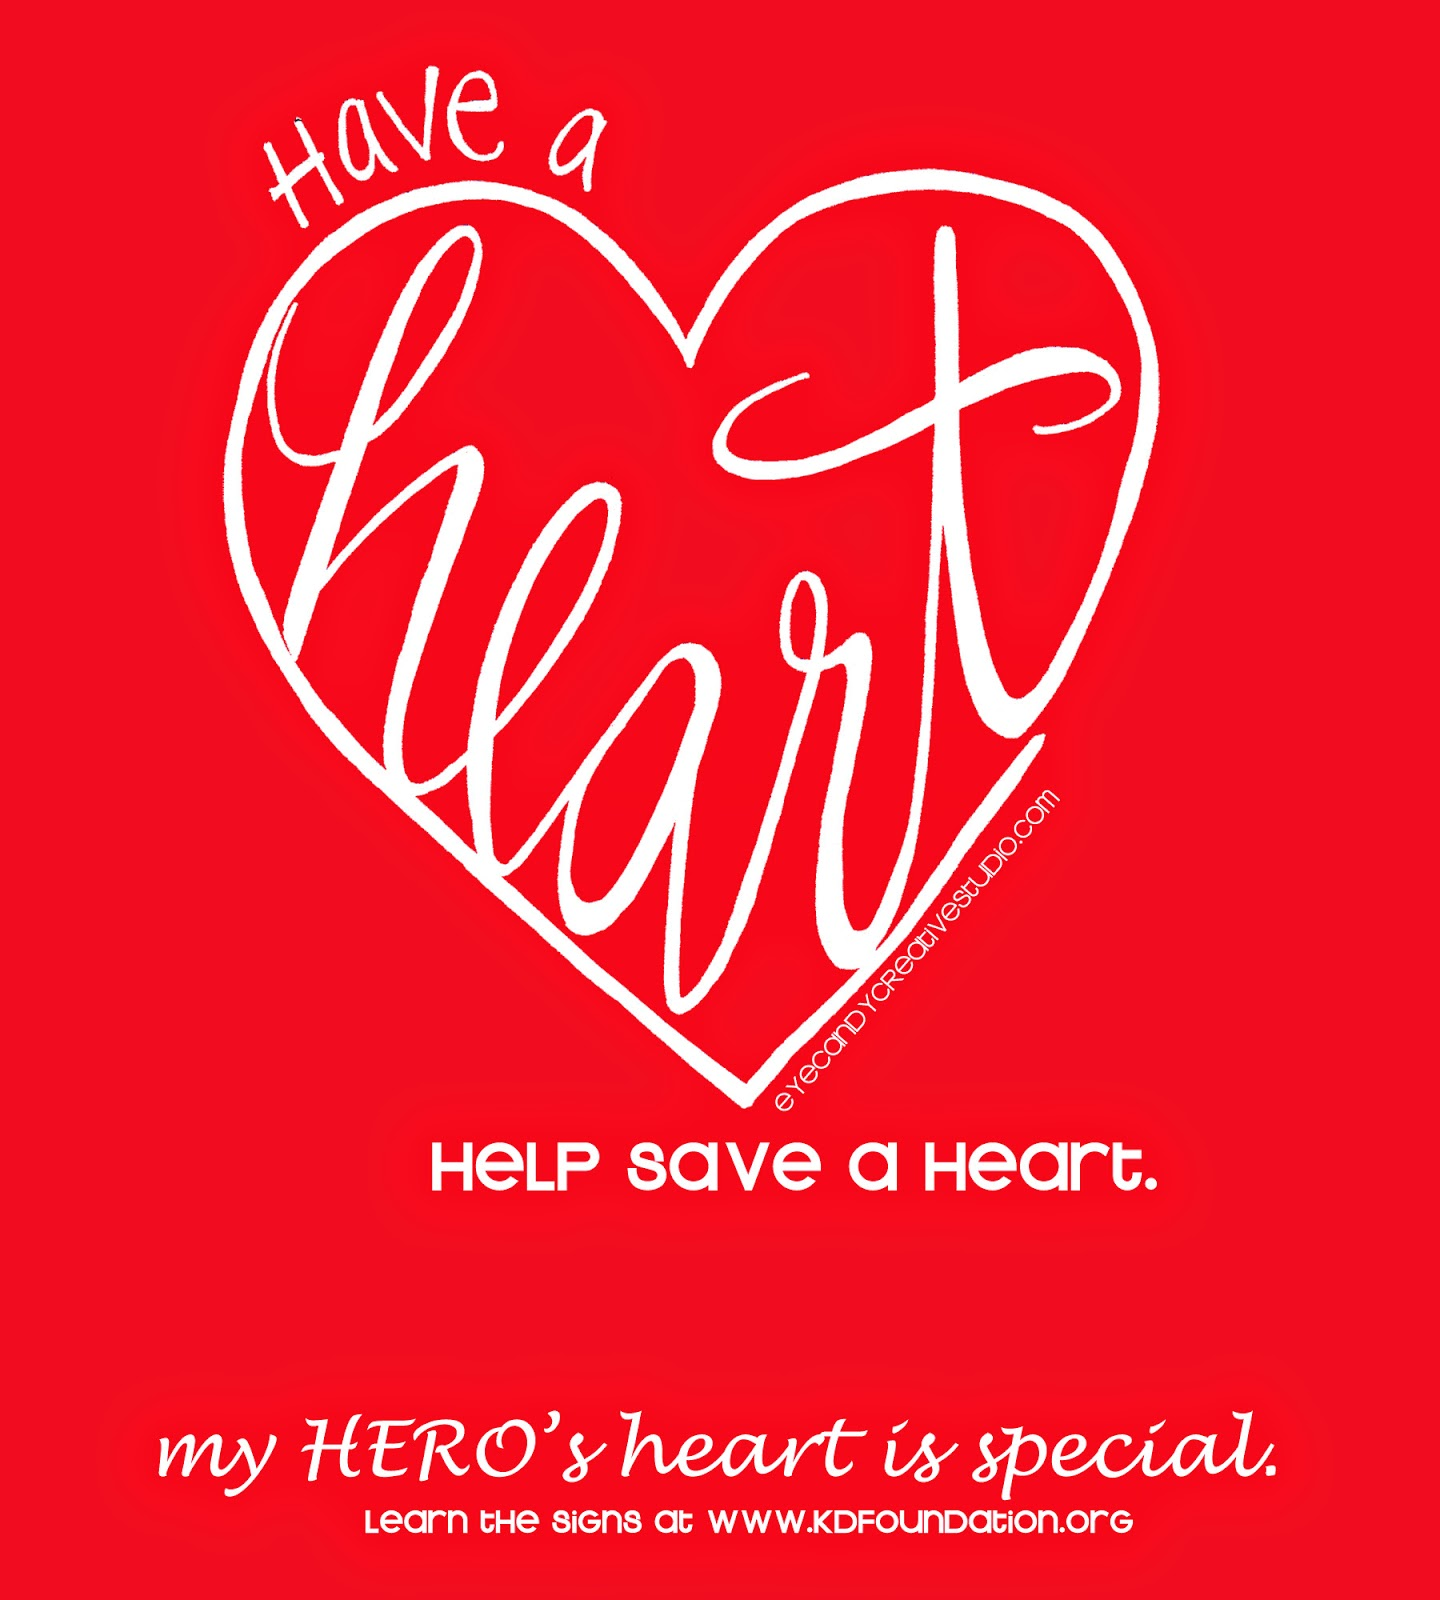 have a heart, help save a heart, my hero, kd foundation